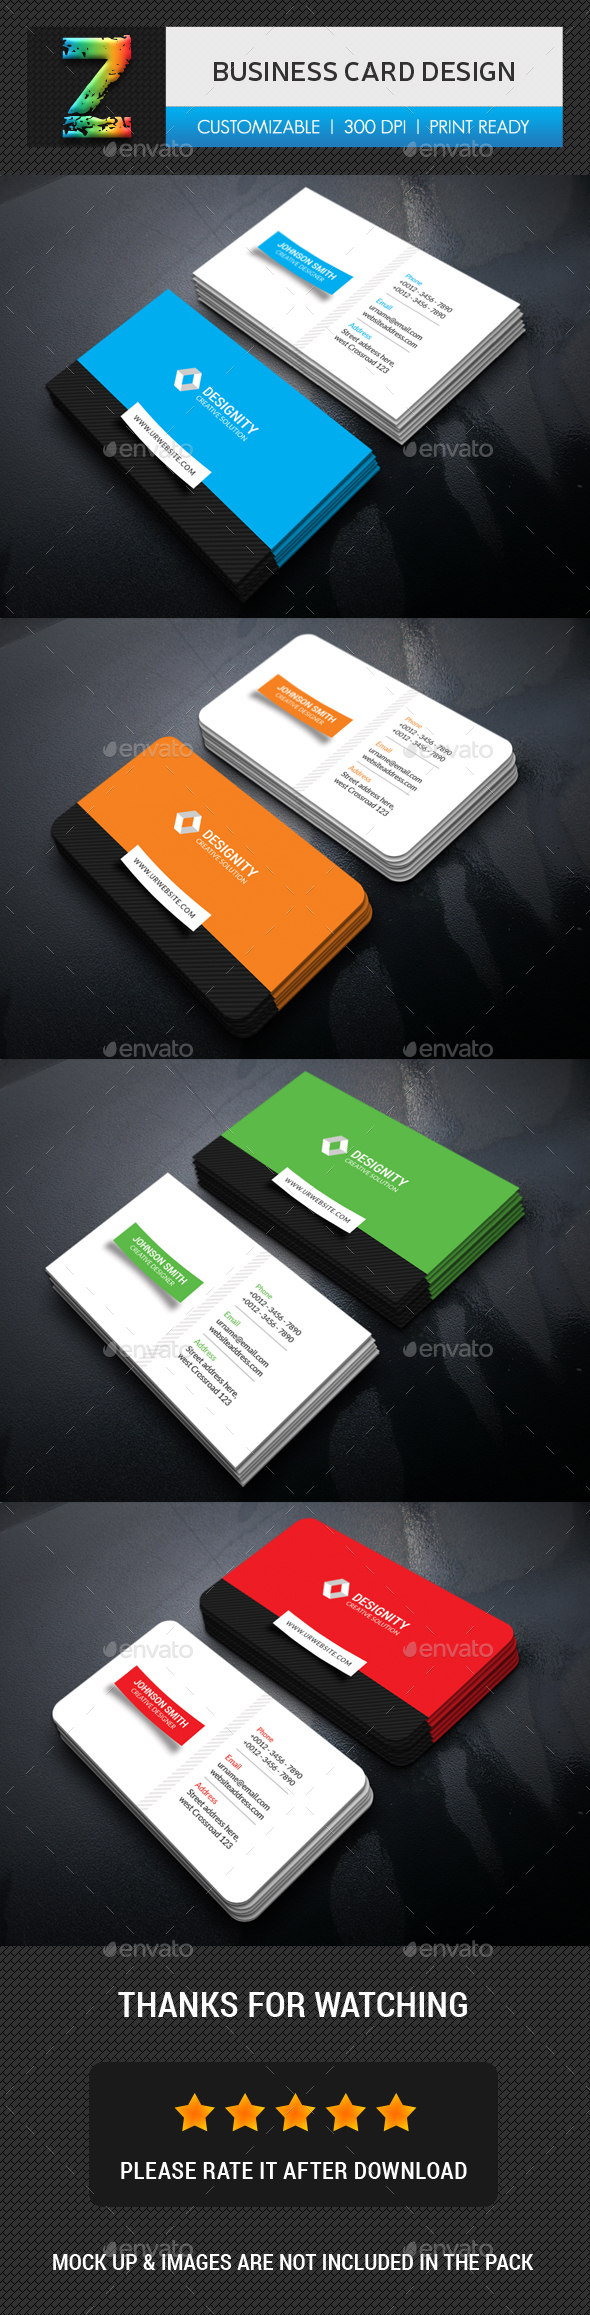 Business Card Design Template - Business Cards Print Template PSD ...